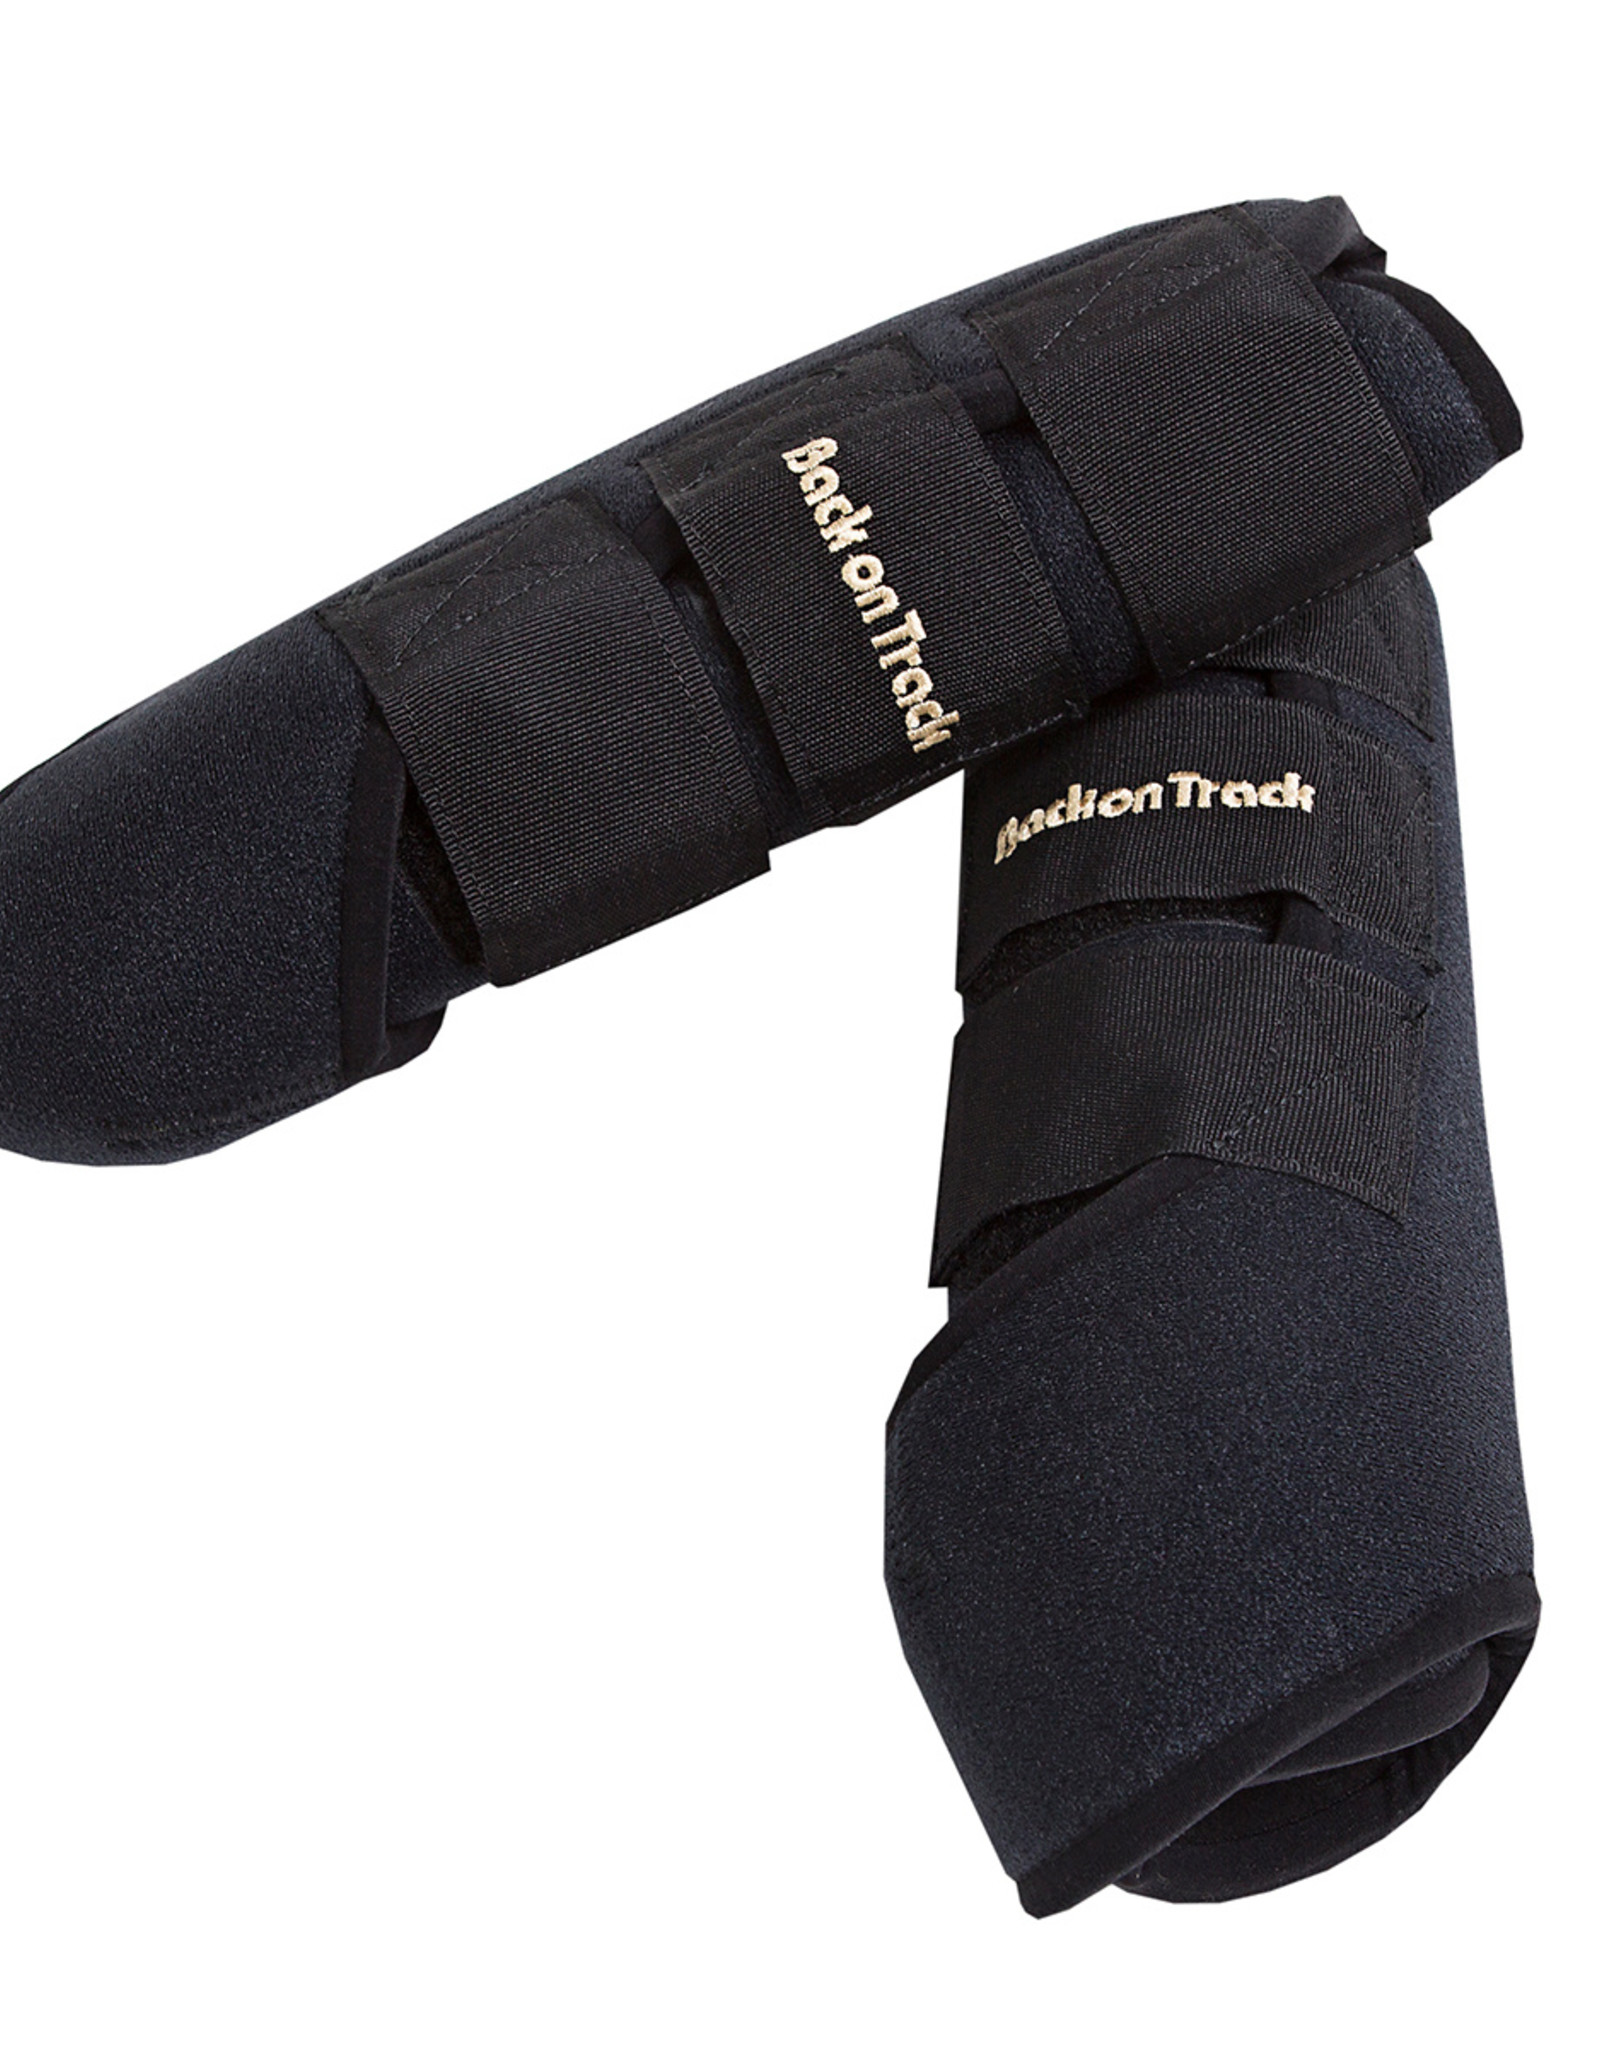 BACK ON TRACK EXERCISE BOOT - FRONT LEG